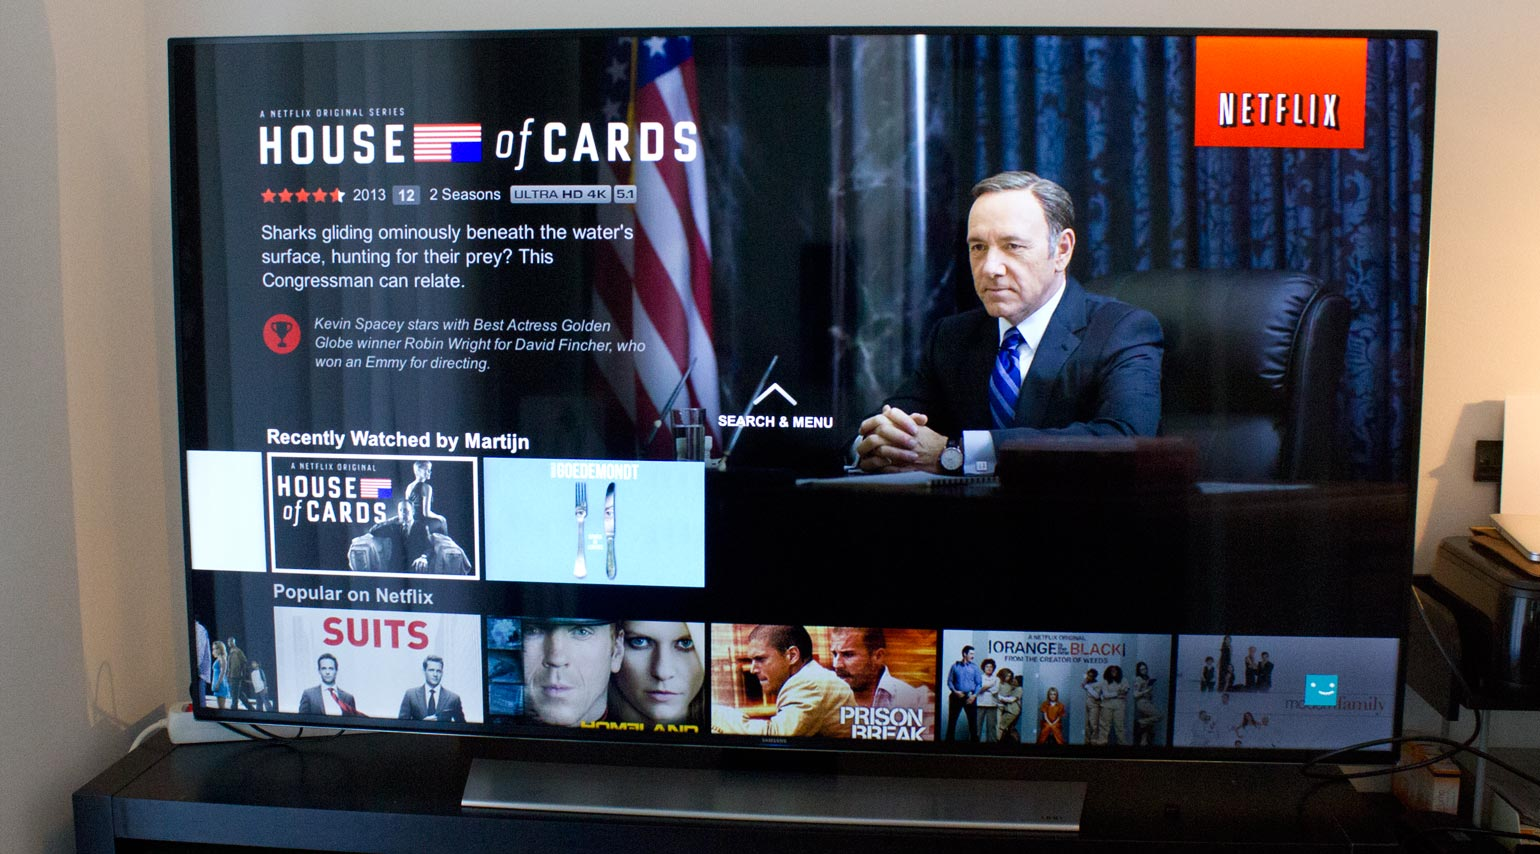 netflix-samsung-ultra-hd-tv